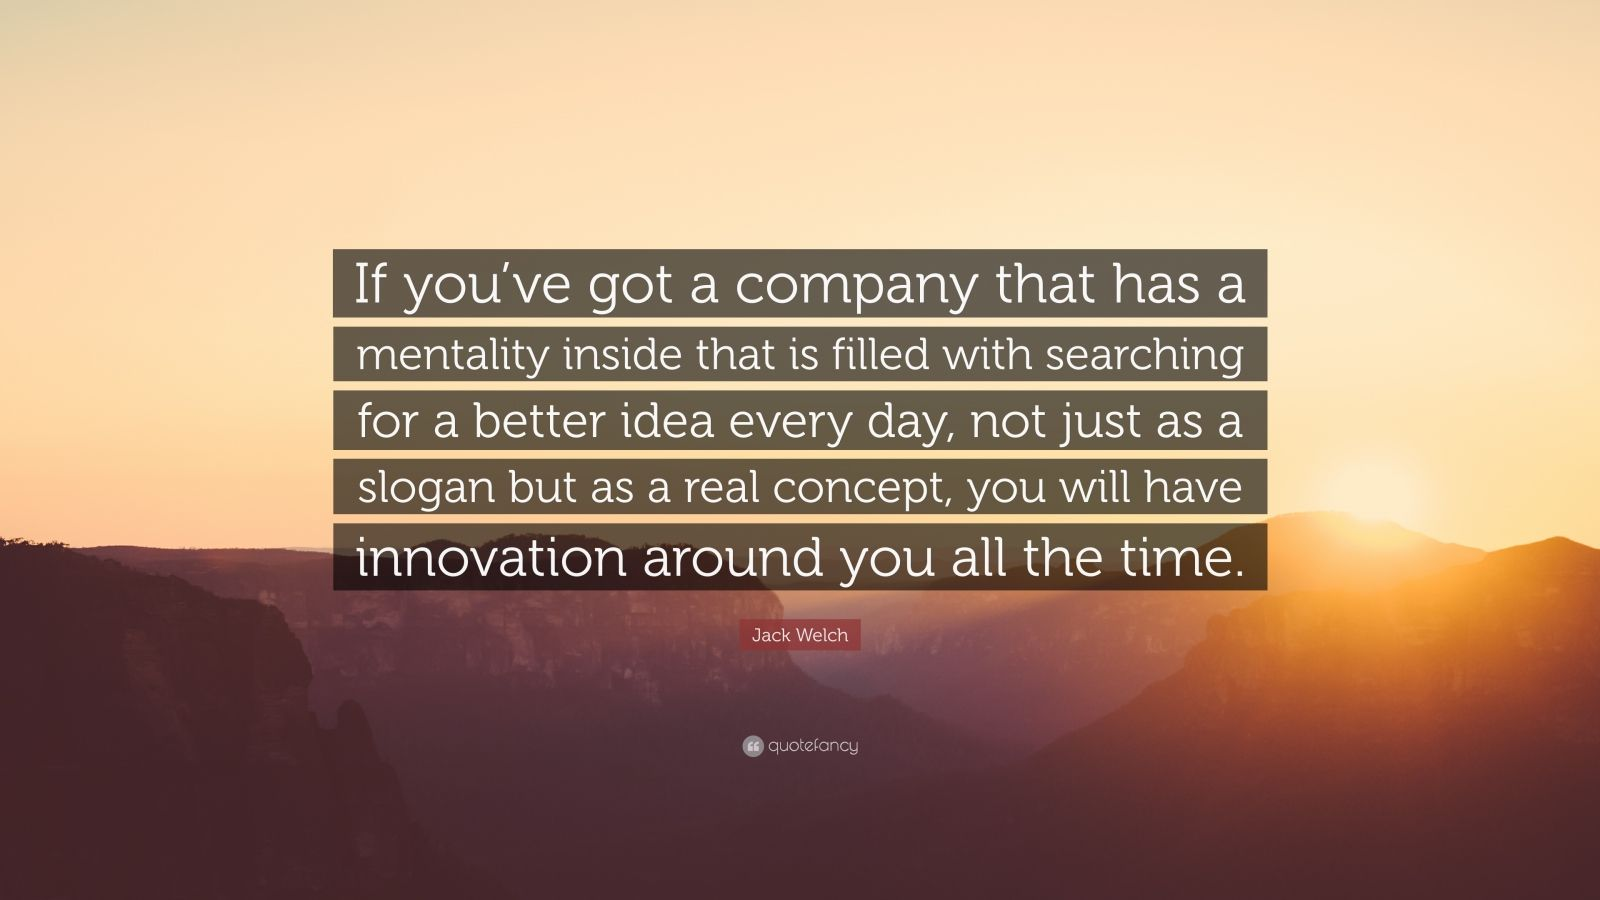 """Jack Welch Quote: """"If you've got a company that has a mentality inside that is filled with searching for a better idea every day, not just as a slogan but as a real concept, you will have innovation around you all the time."""""""